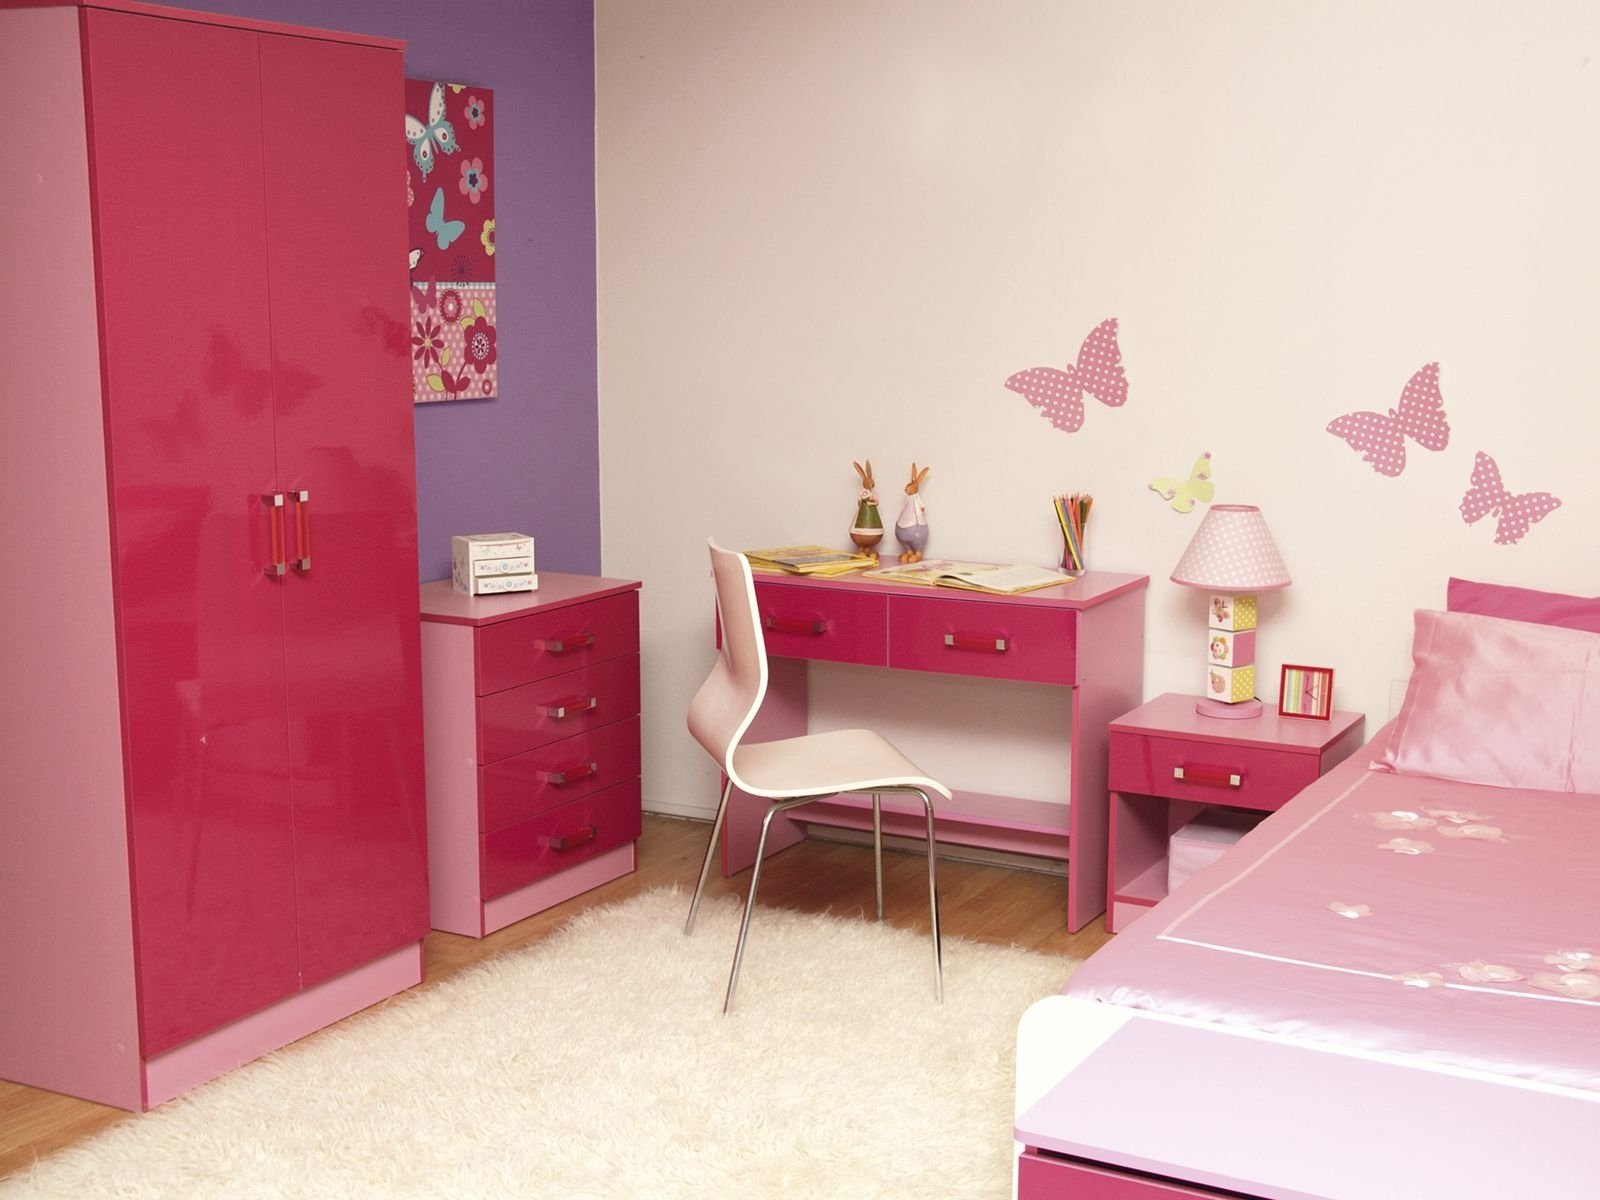 Red Pink Wooden Wardrobe Next To Red Pink Wooden Chest Of Drawers Throughout Most Current Childrens Pink Wardrobes (View 14 of 15)